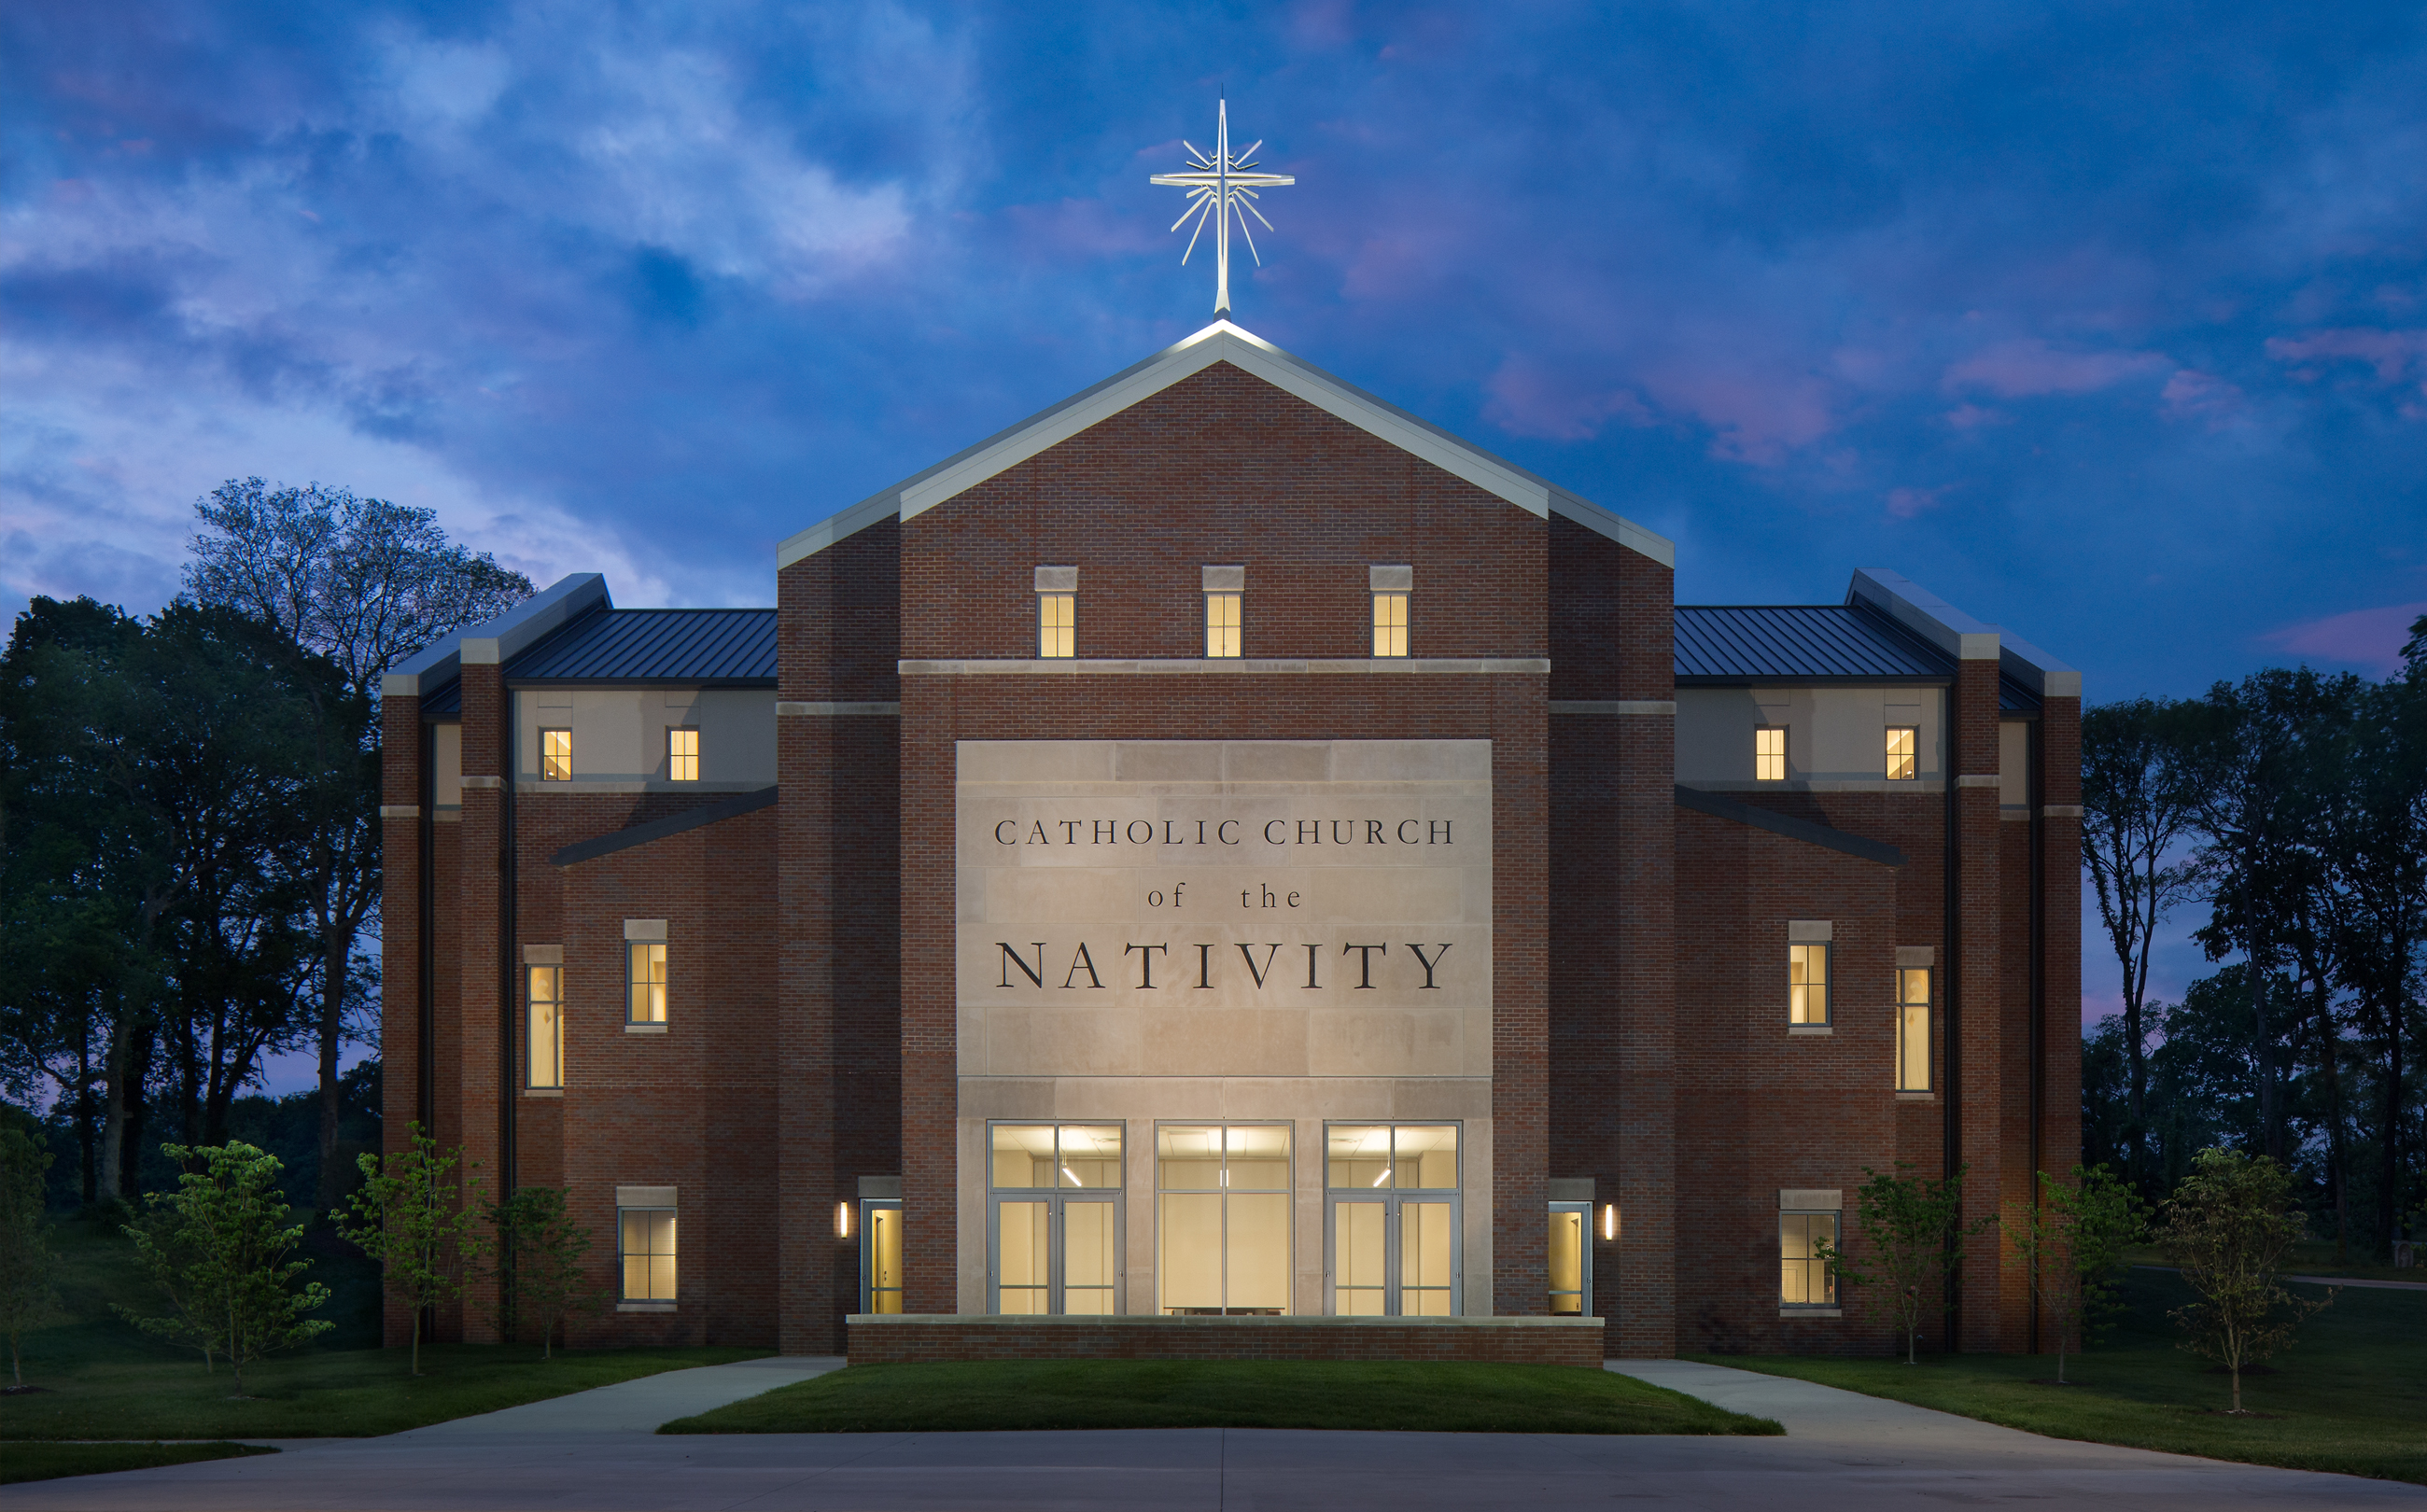 Catholic Church of the Nativity, Church of the Nativity, Nashville, TN, Tennessee, architecture, design, religious, new construction, exterior, interior